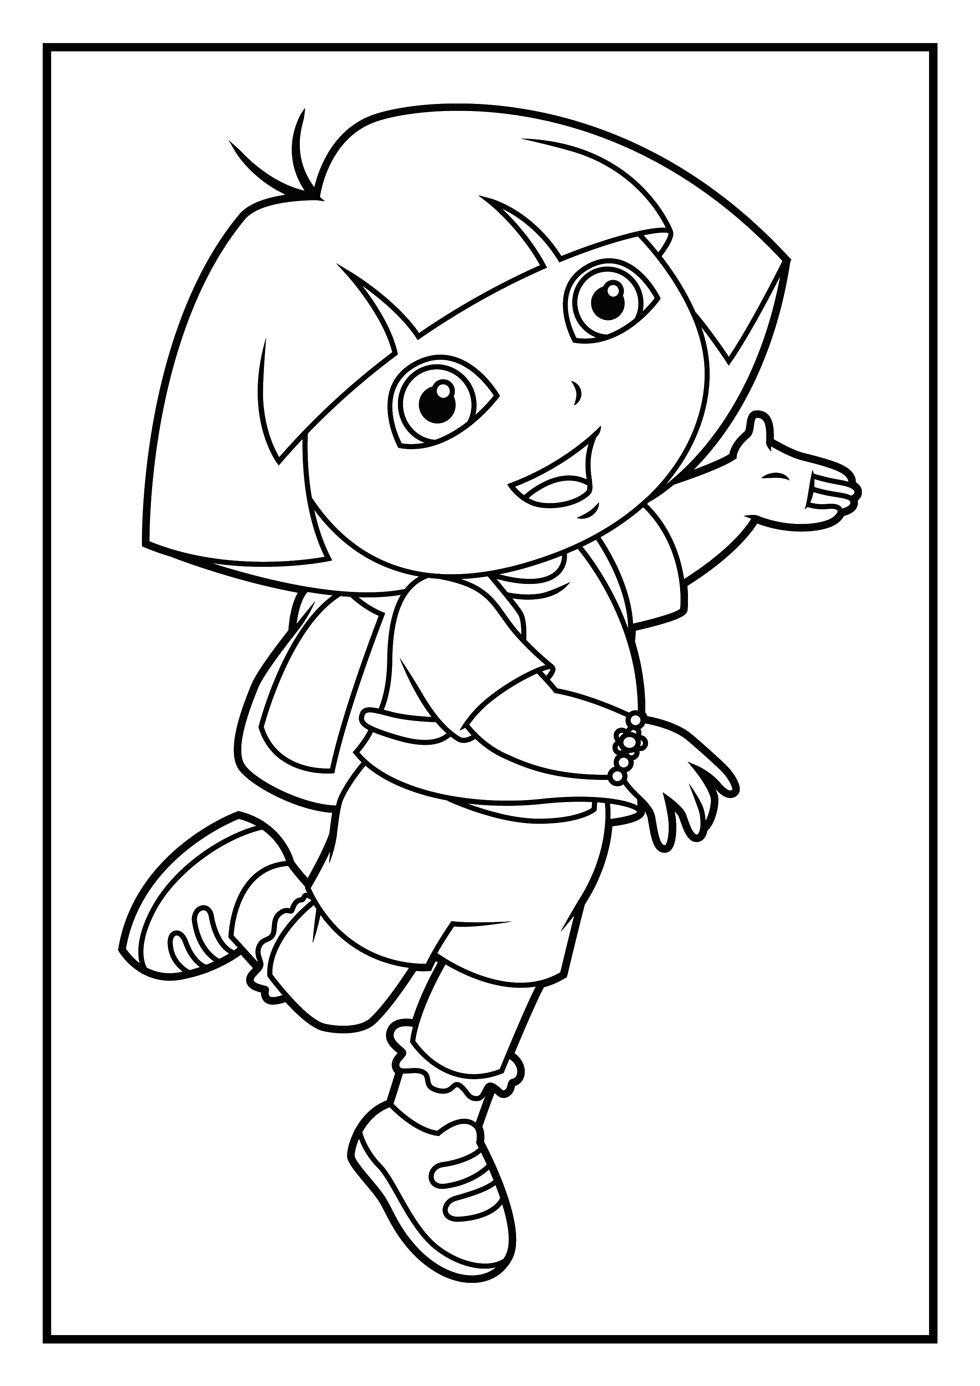 Lovely Dora Printable Coloring Pages For Kids Boys And Girls